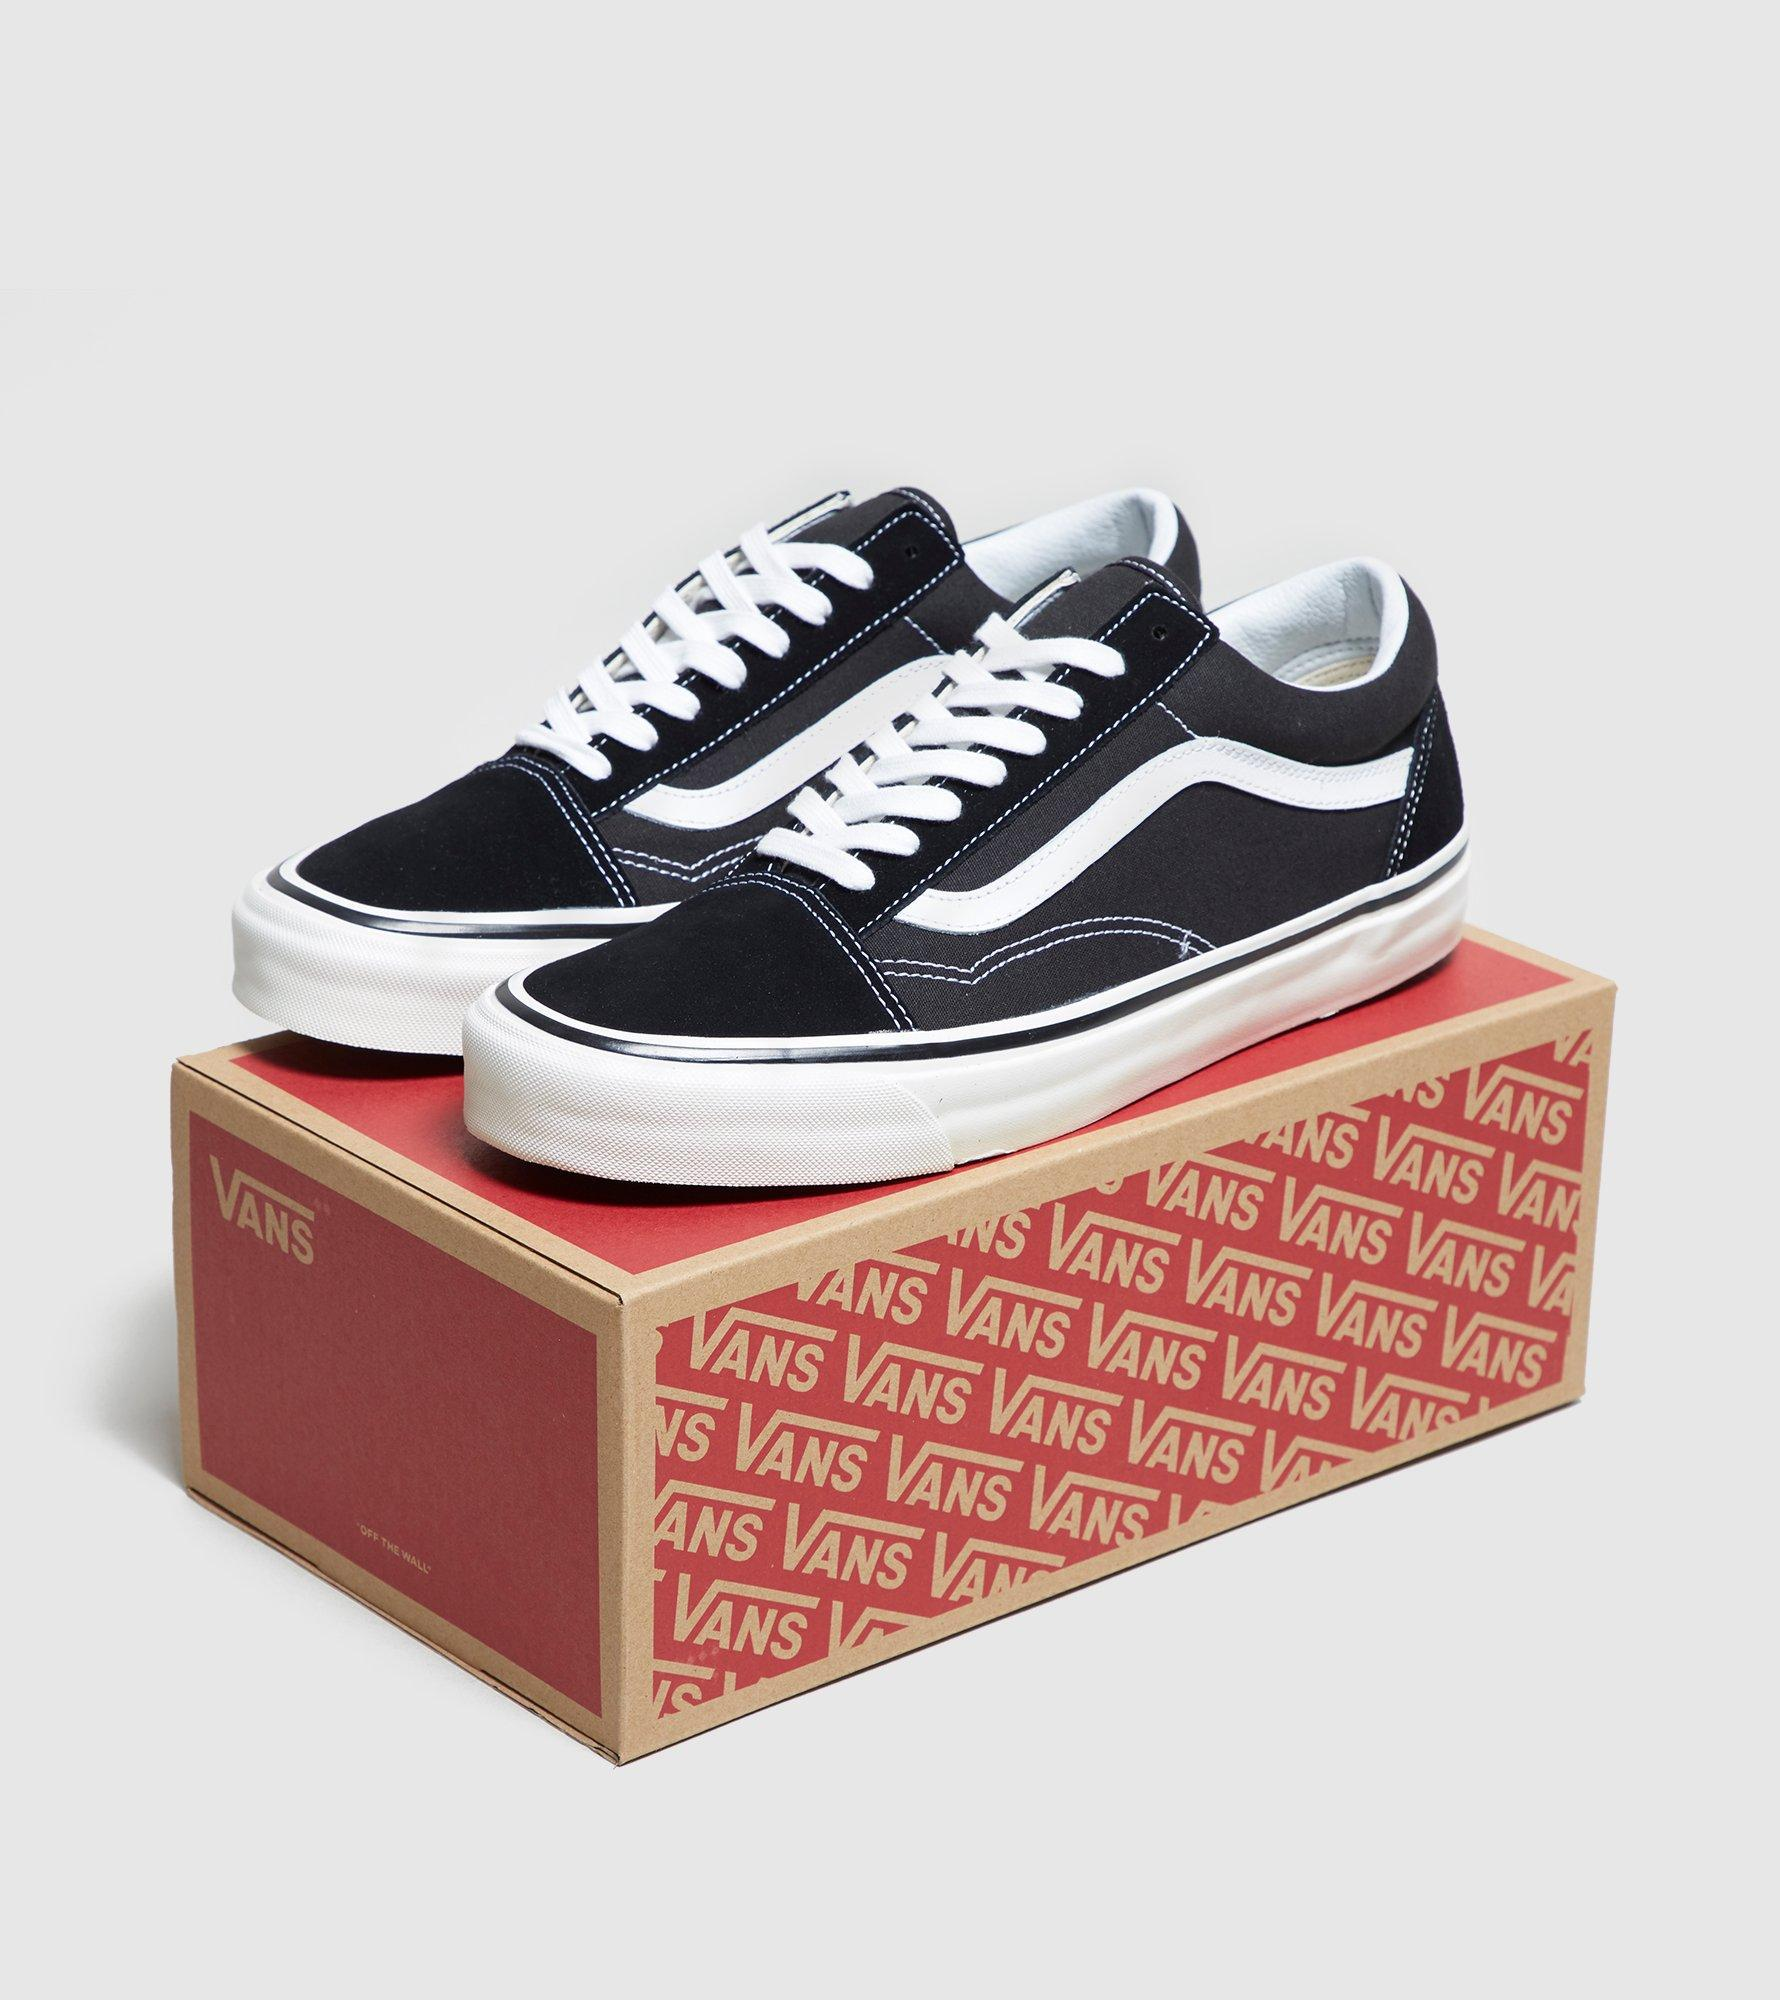 736fa65521 Lyst - Vans Old Skool  anaheim  - Size  European Exclusive in Black ...